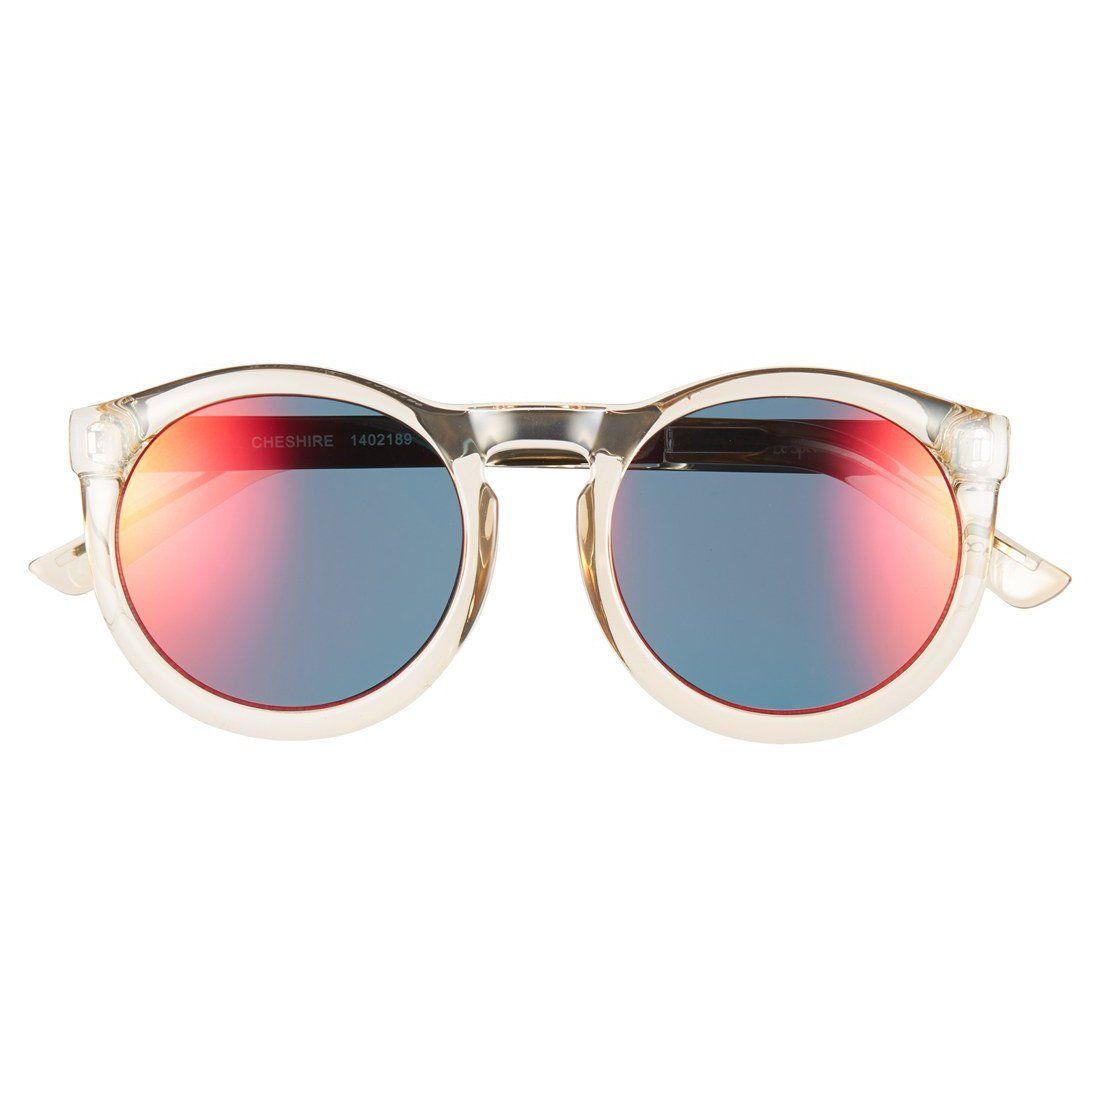 Chesire Sunglasses by Le Specs - $69